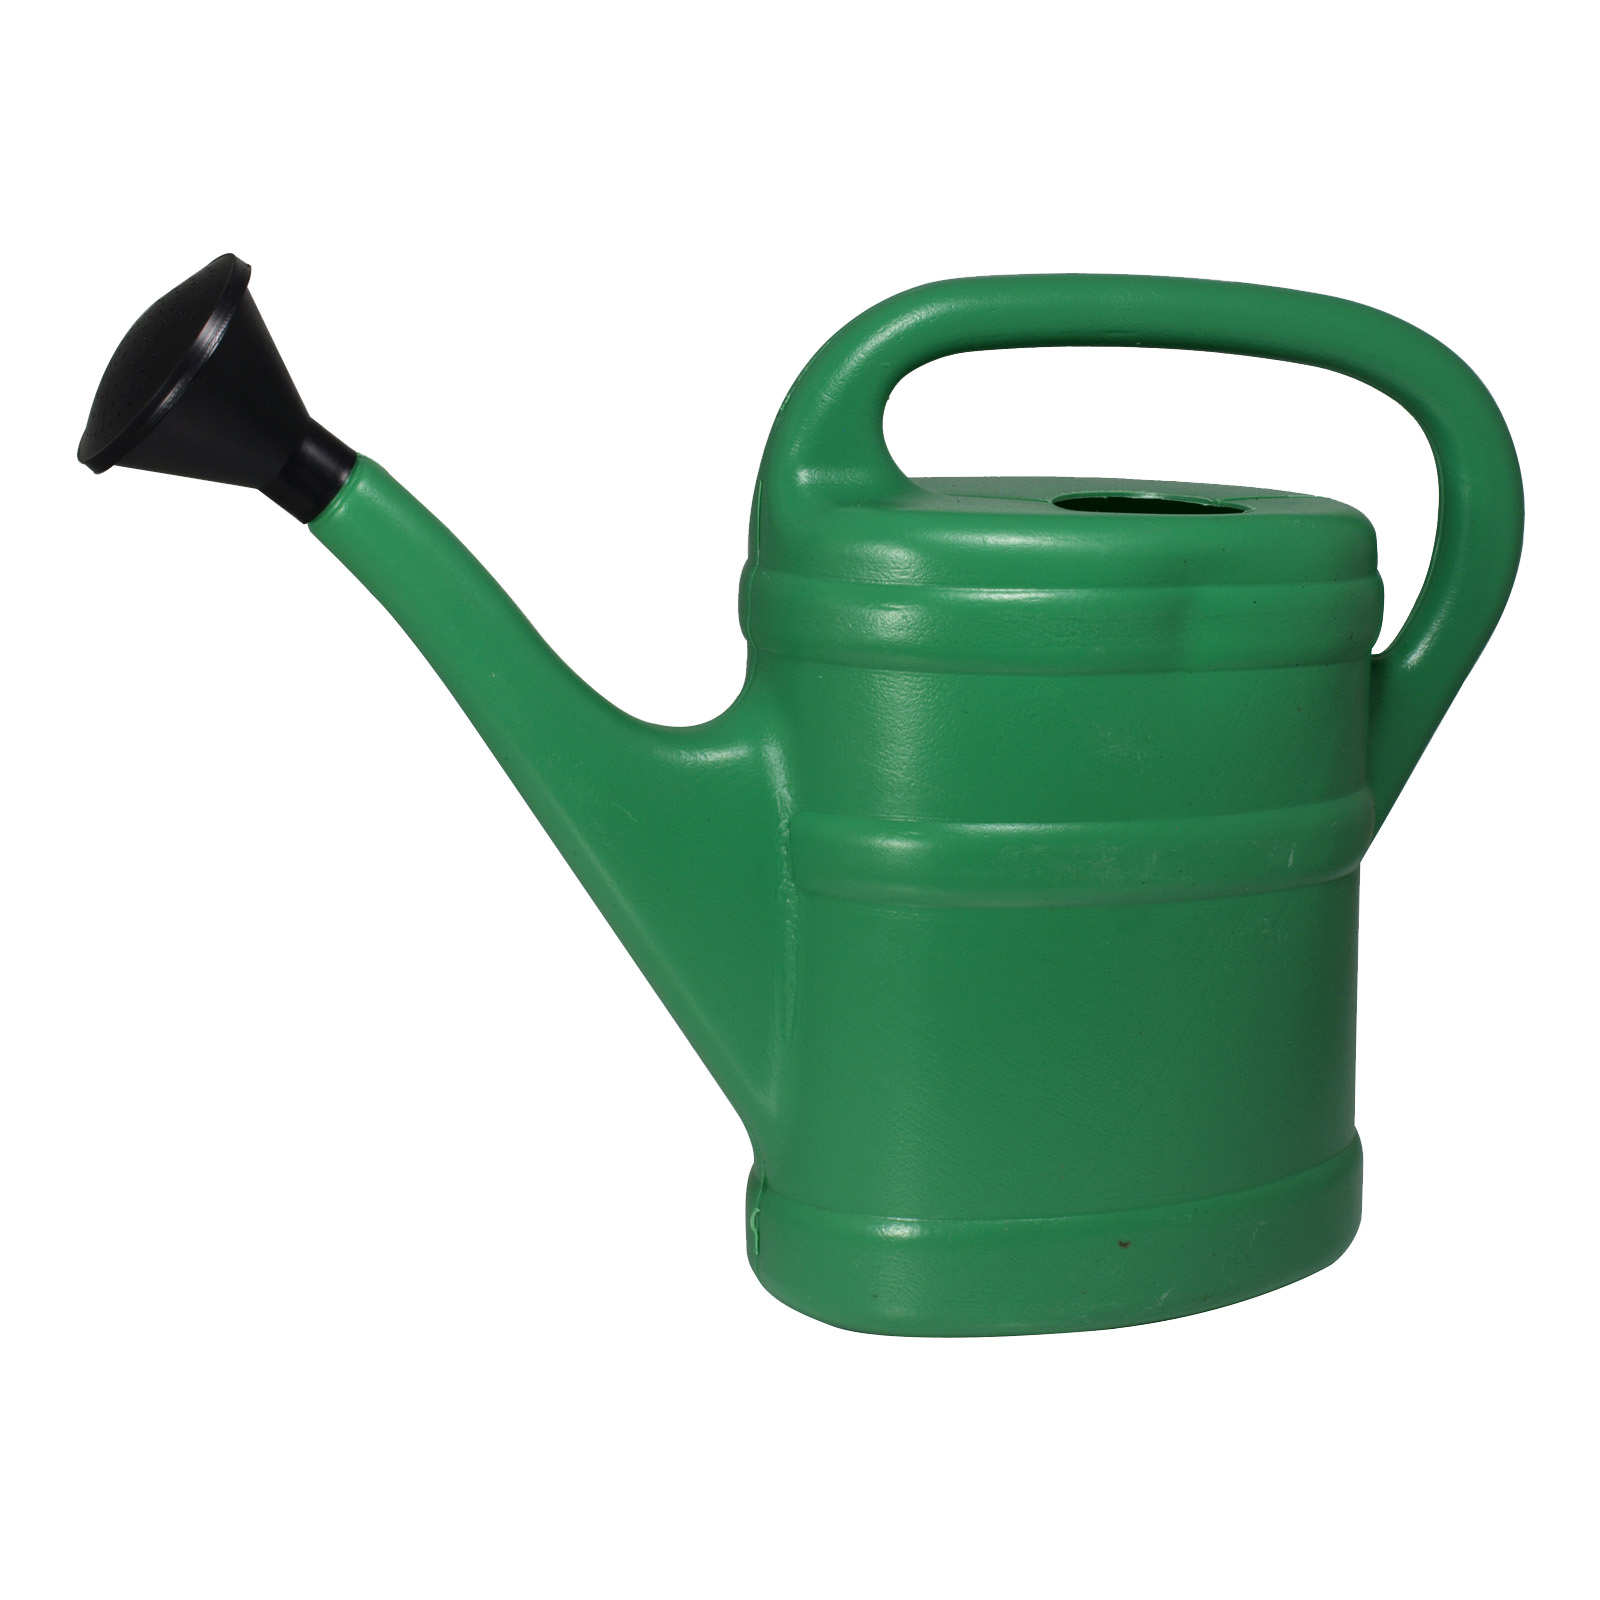 KINGFISHER WATERING CAN 5L